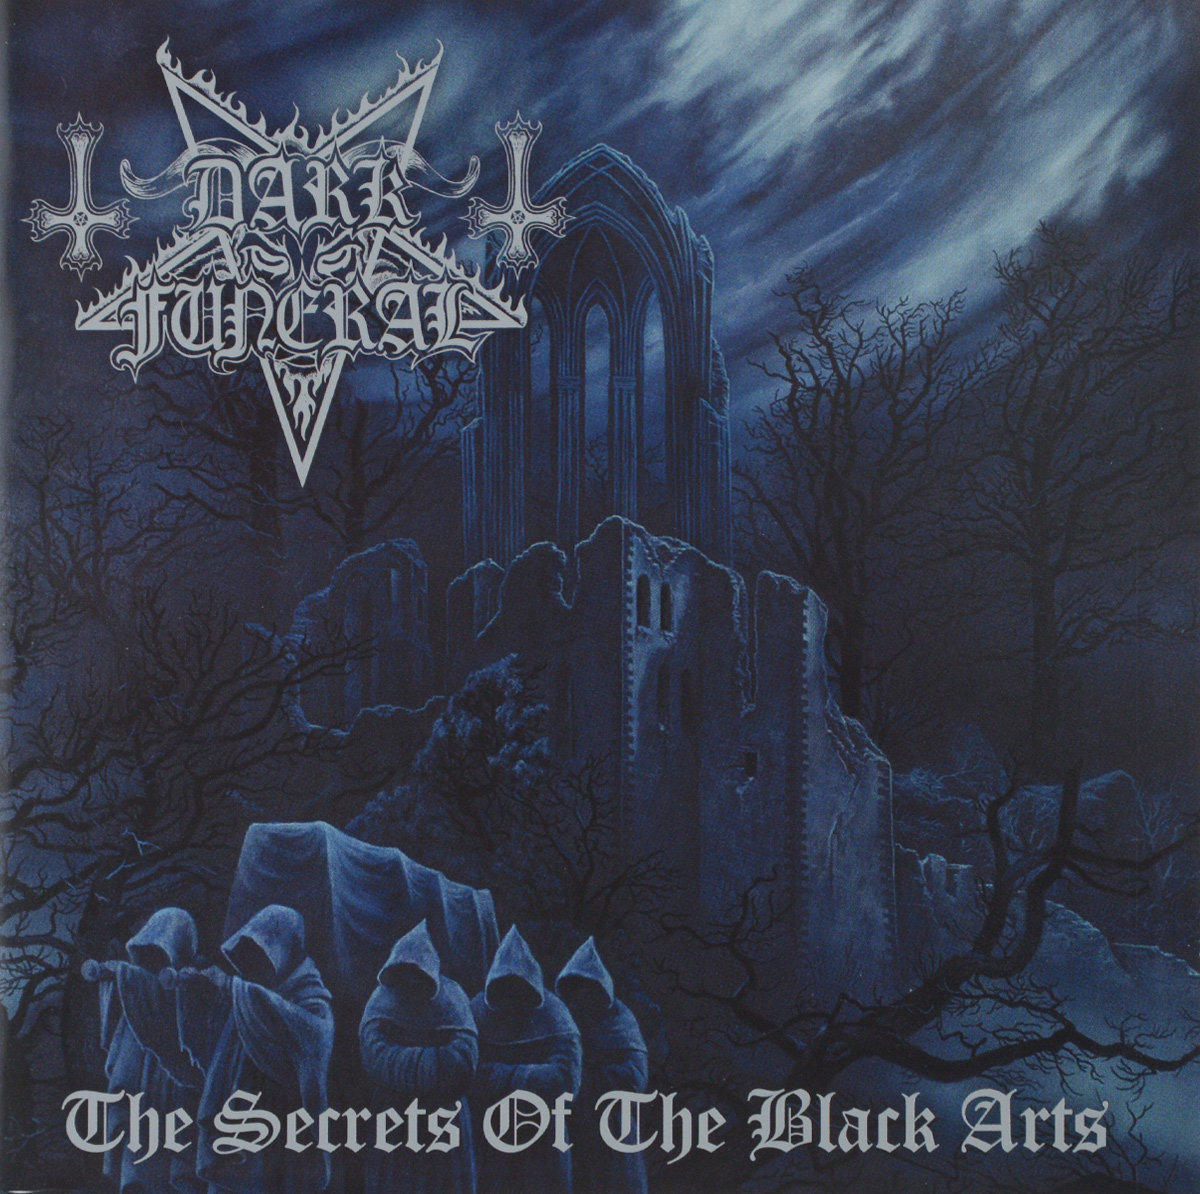 Dark Funeral Dark Funeral. The Secrets Of The Black Arts (2 CD) катушка индуктивности mundorf m coil zero ohm vn300 1 mh 3 mm